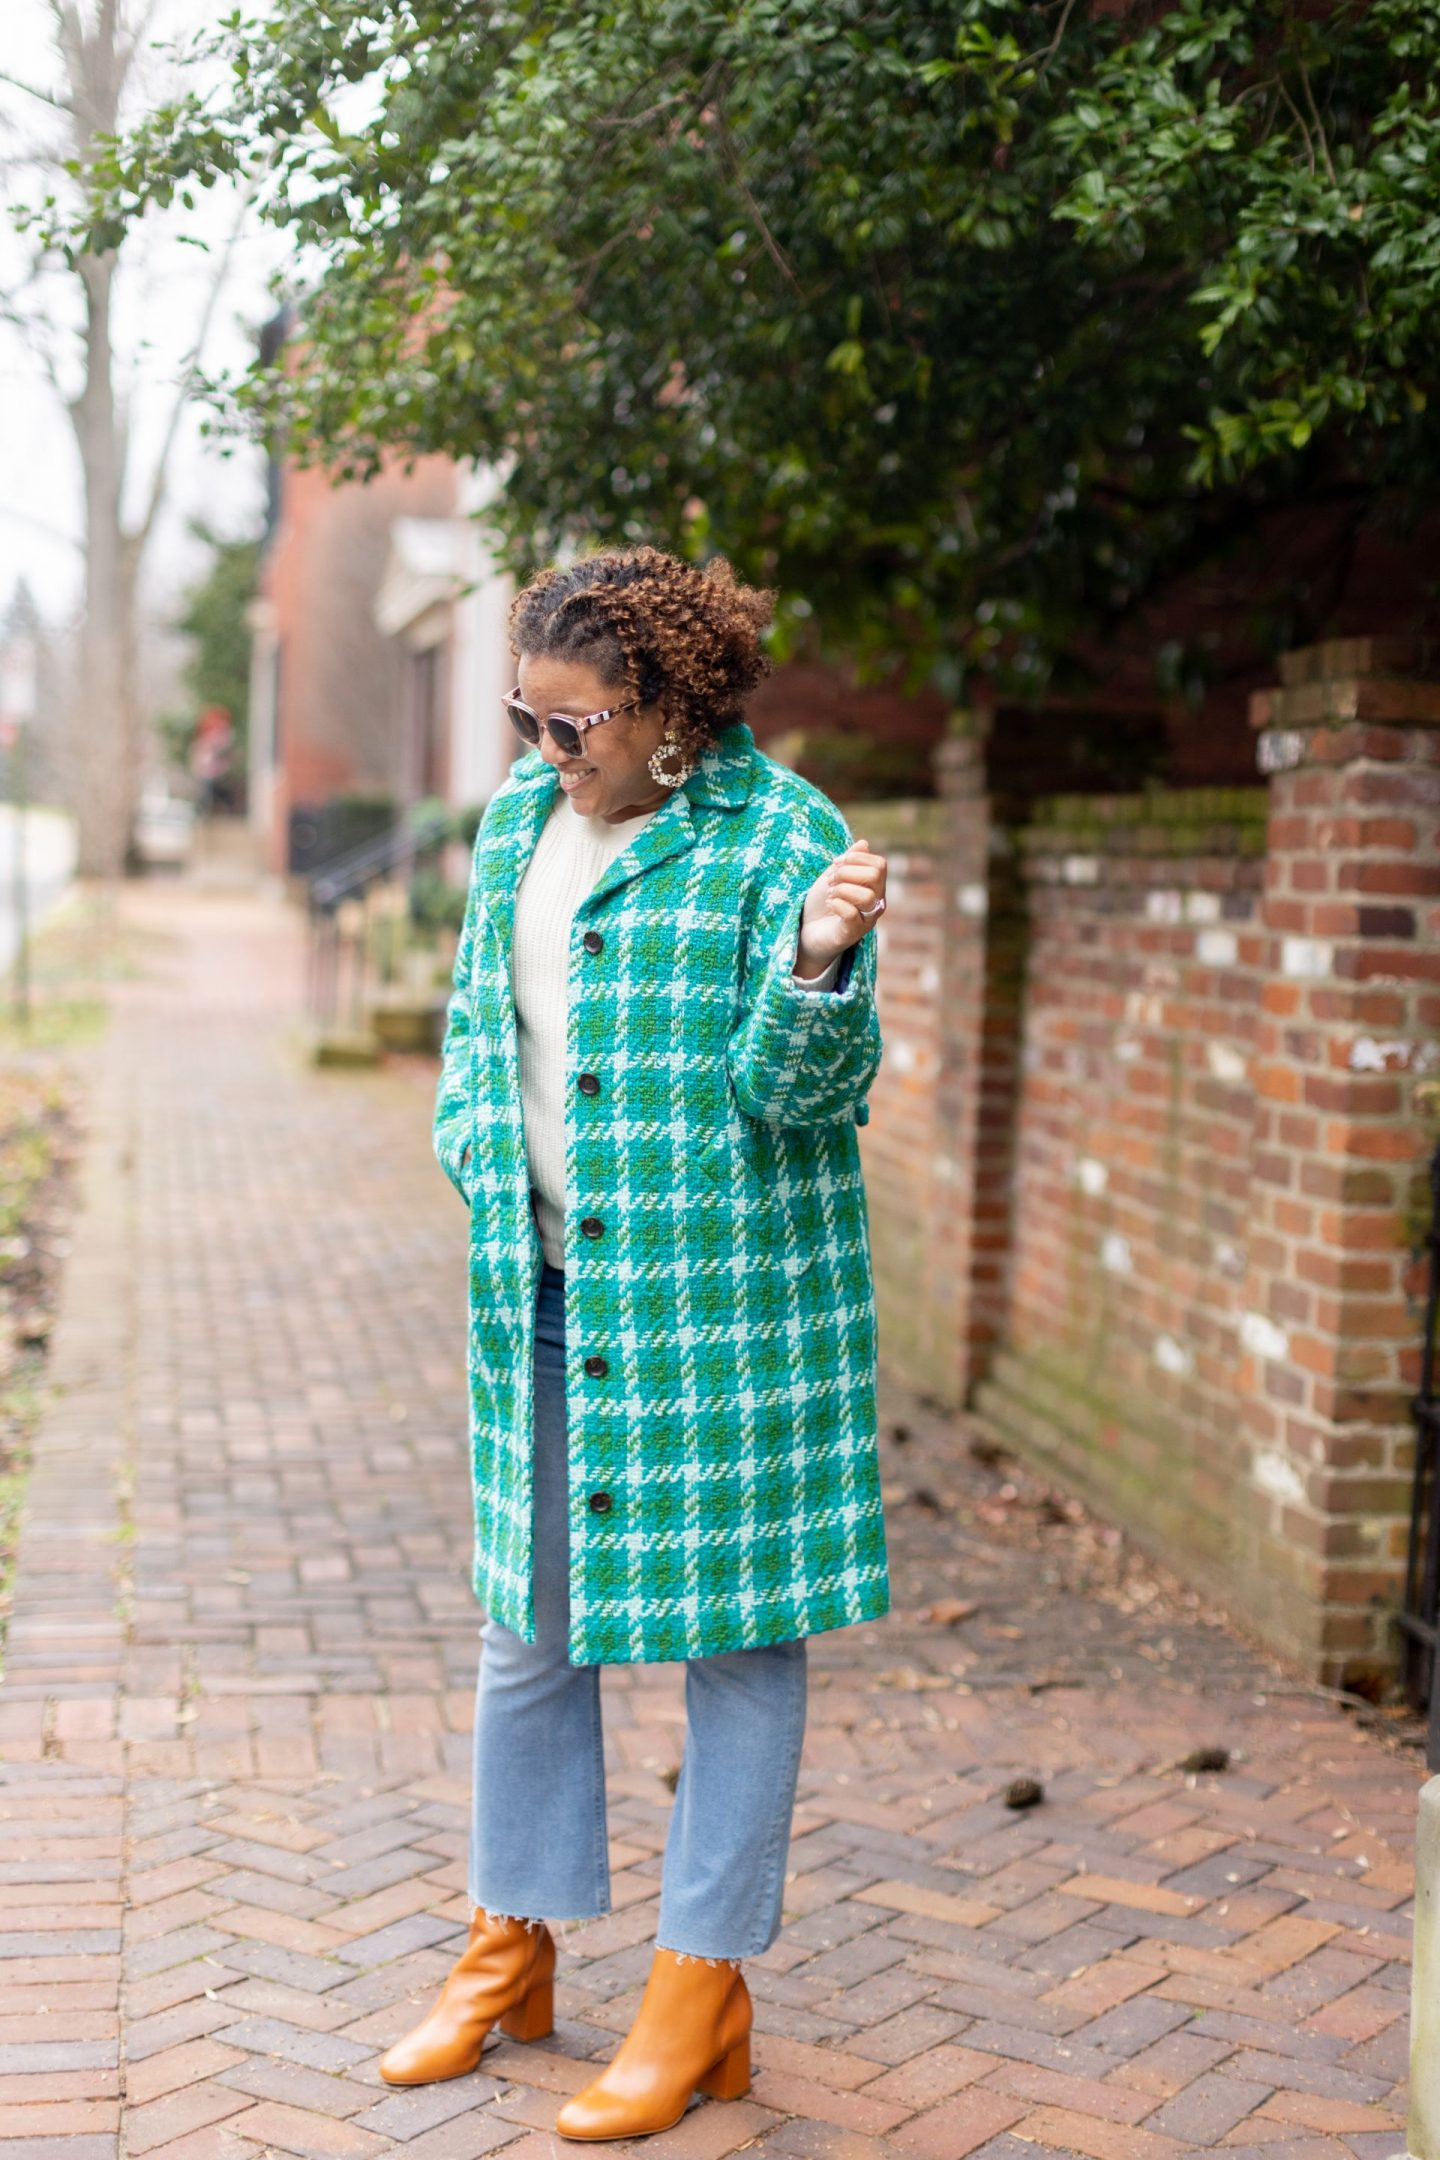 J Crew Coat by popular Kentucky fashion blog, Really Rynetta: image of a woman wearing a J Crew Car Coat in Houndstooth.